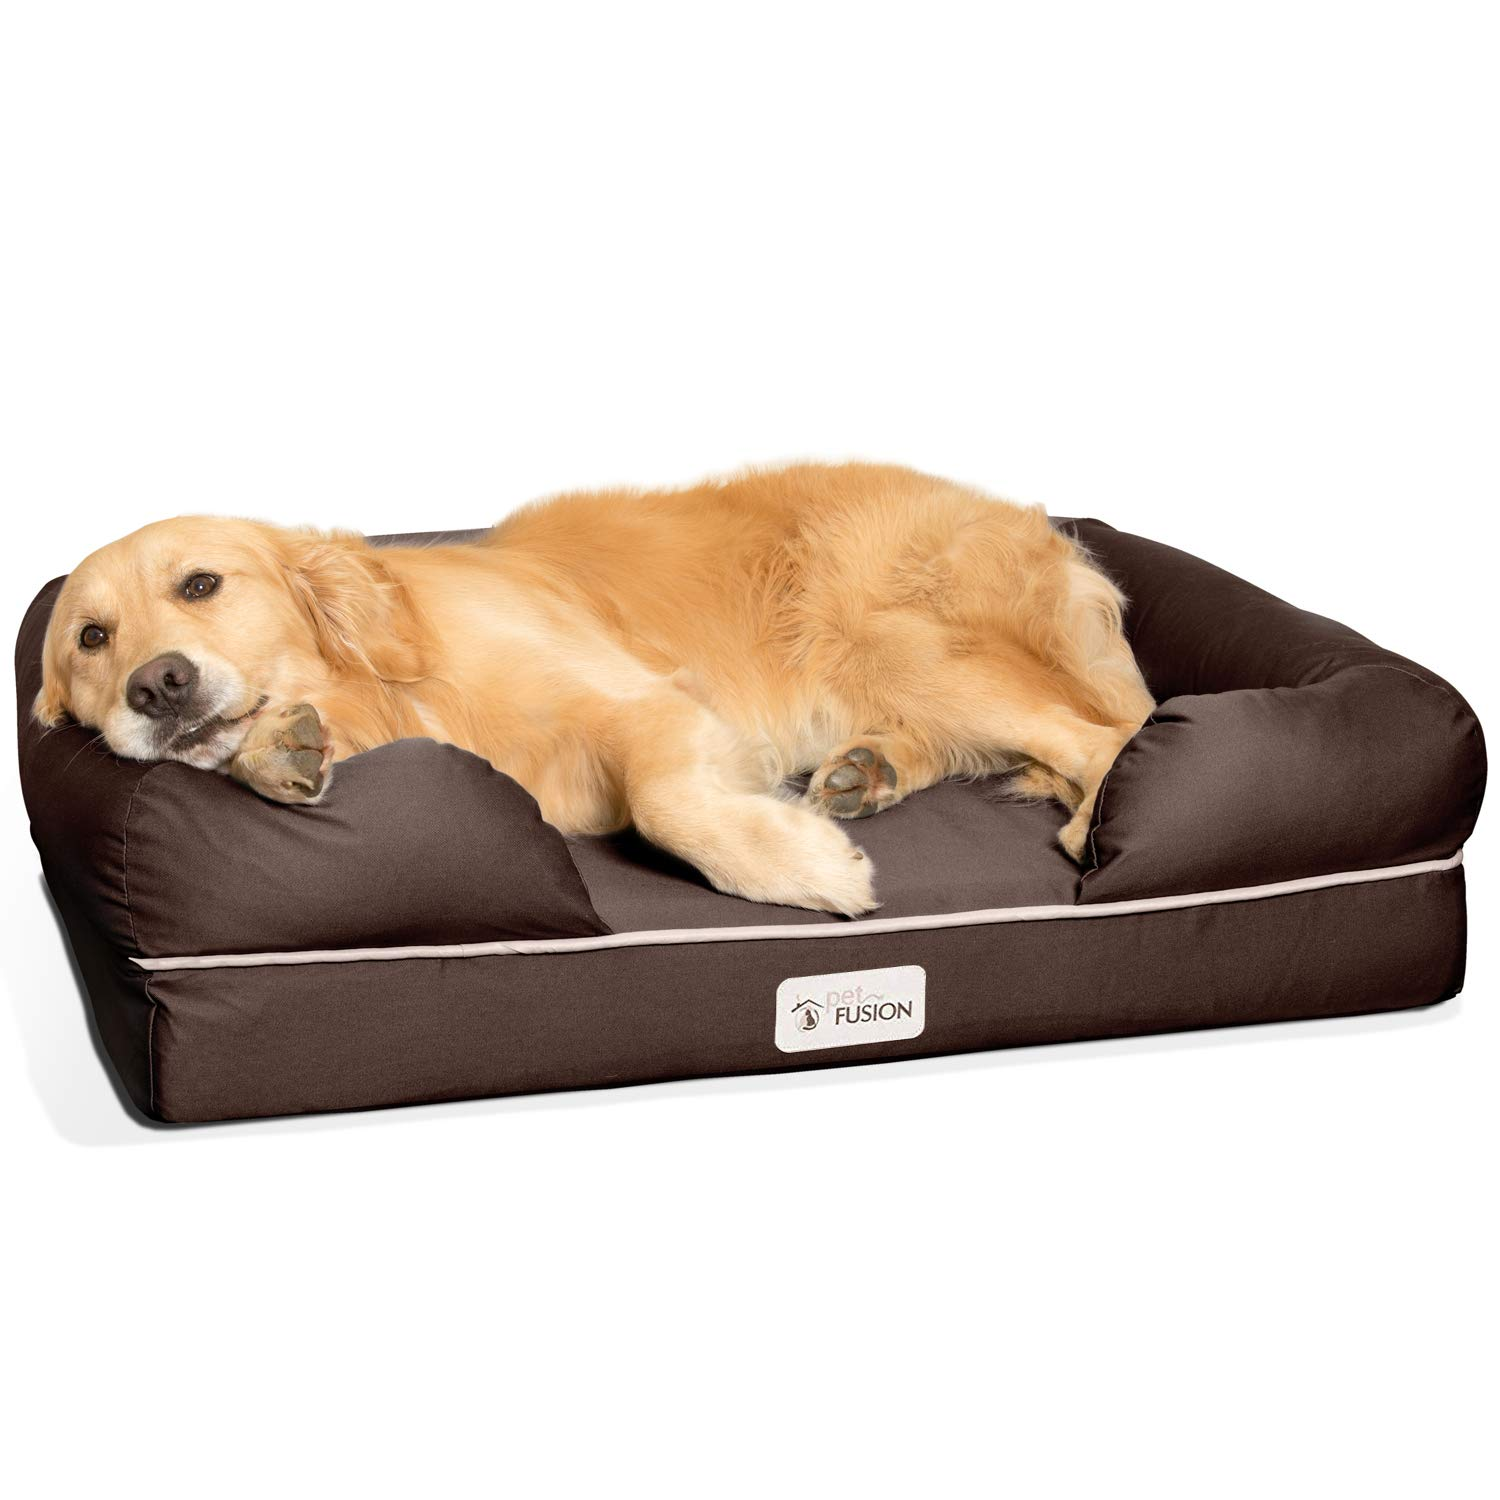 PetFusion Large Dog Bed w/Solid 4'' Memory Foam, Waterproof Liner, YKK Premium Zippers. [Brown, 36x28x9 - Sized for Medium & Large Dogs]. Breathable Cotton Blend Cover, Removable & Easy to Clean